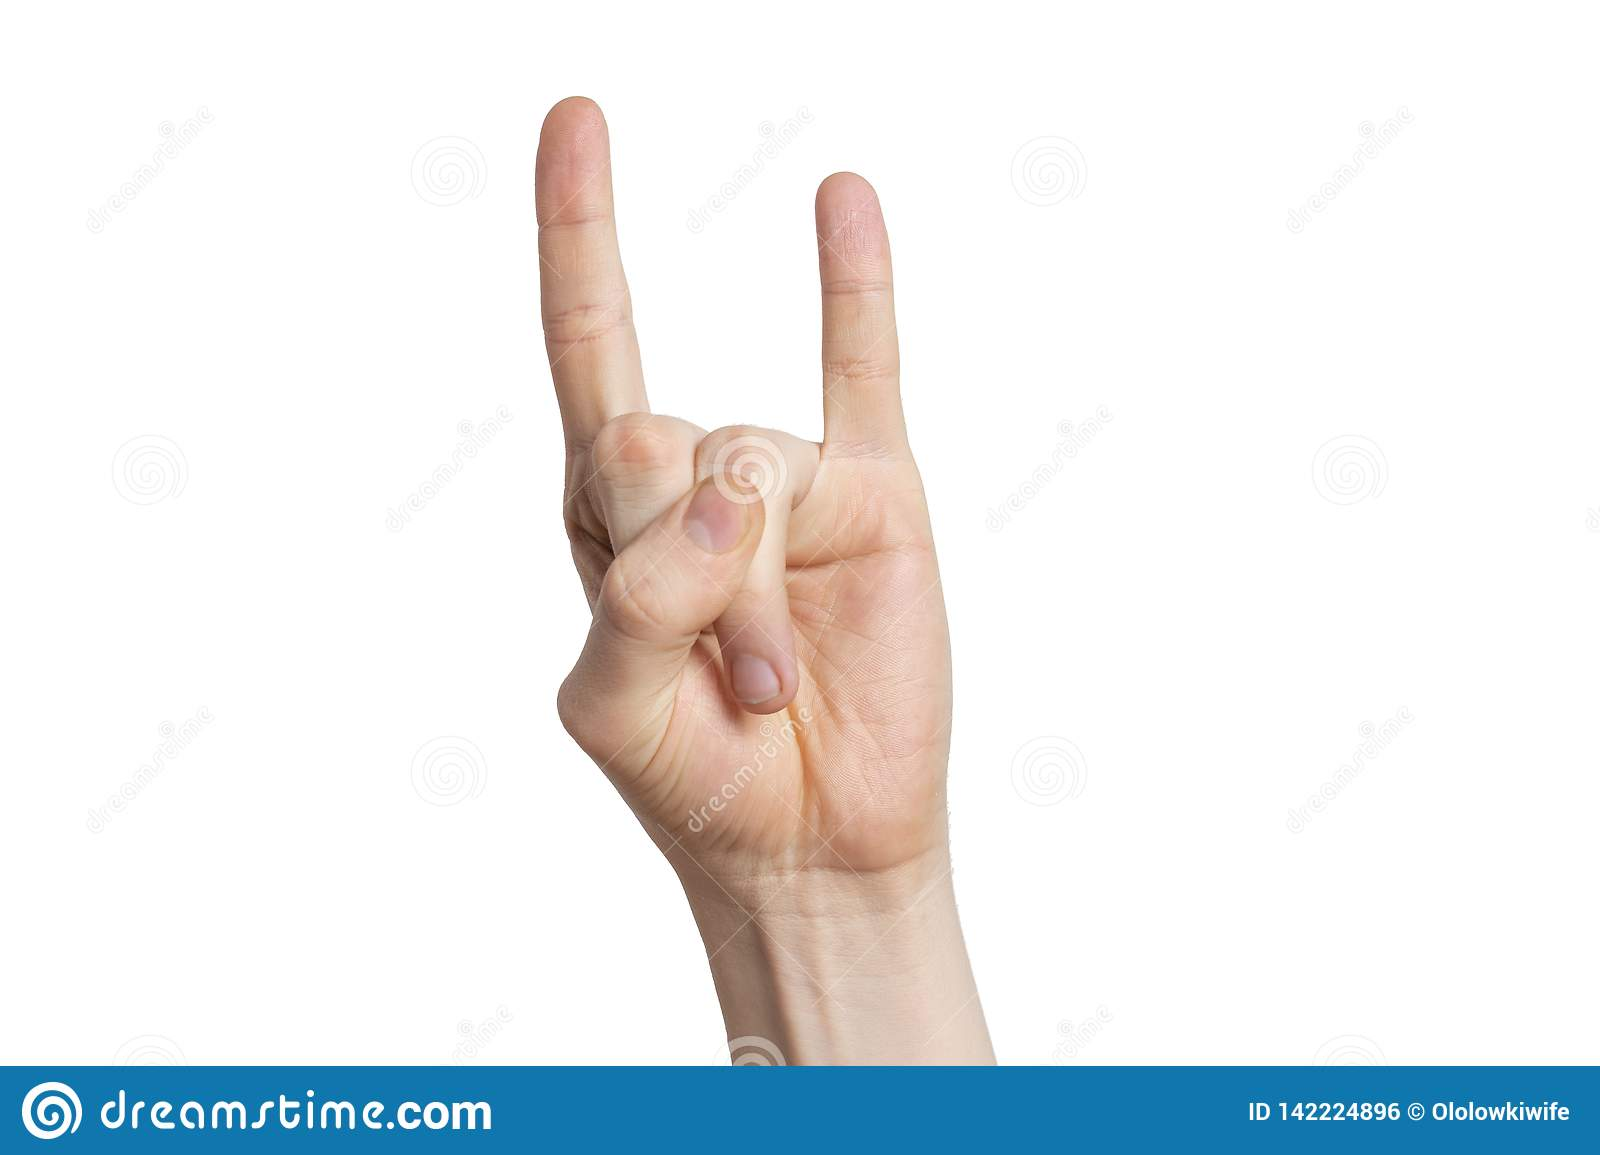 Man hand show rock sign, goat gesture isolated on white background